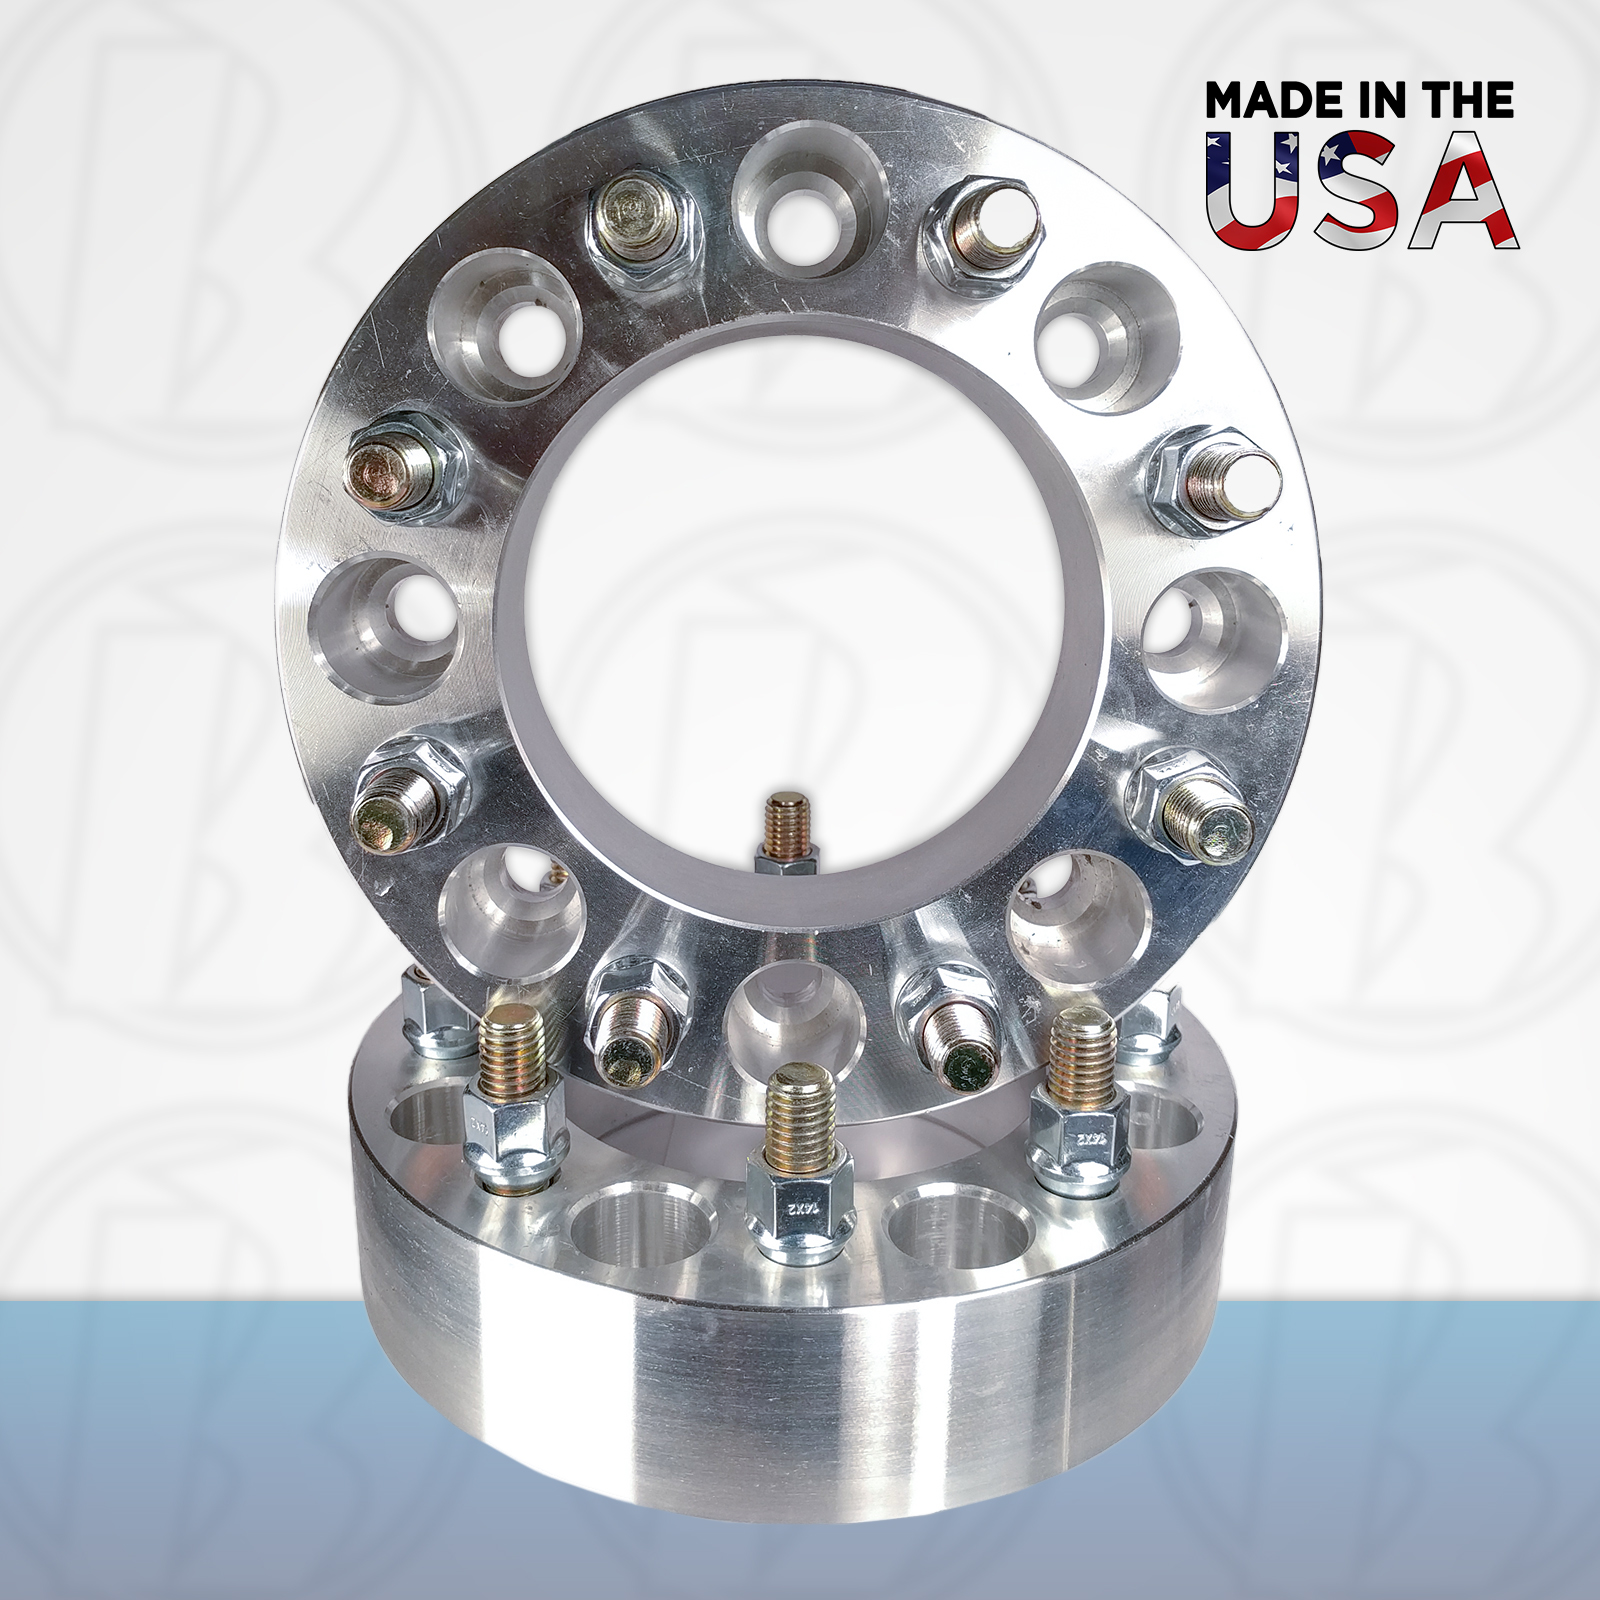 8x6.5 to 8x200 Wheel Adapters/Spacers